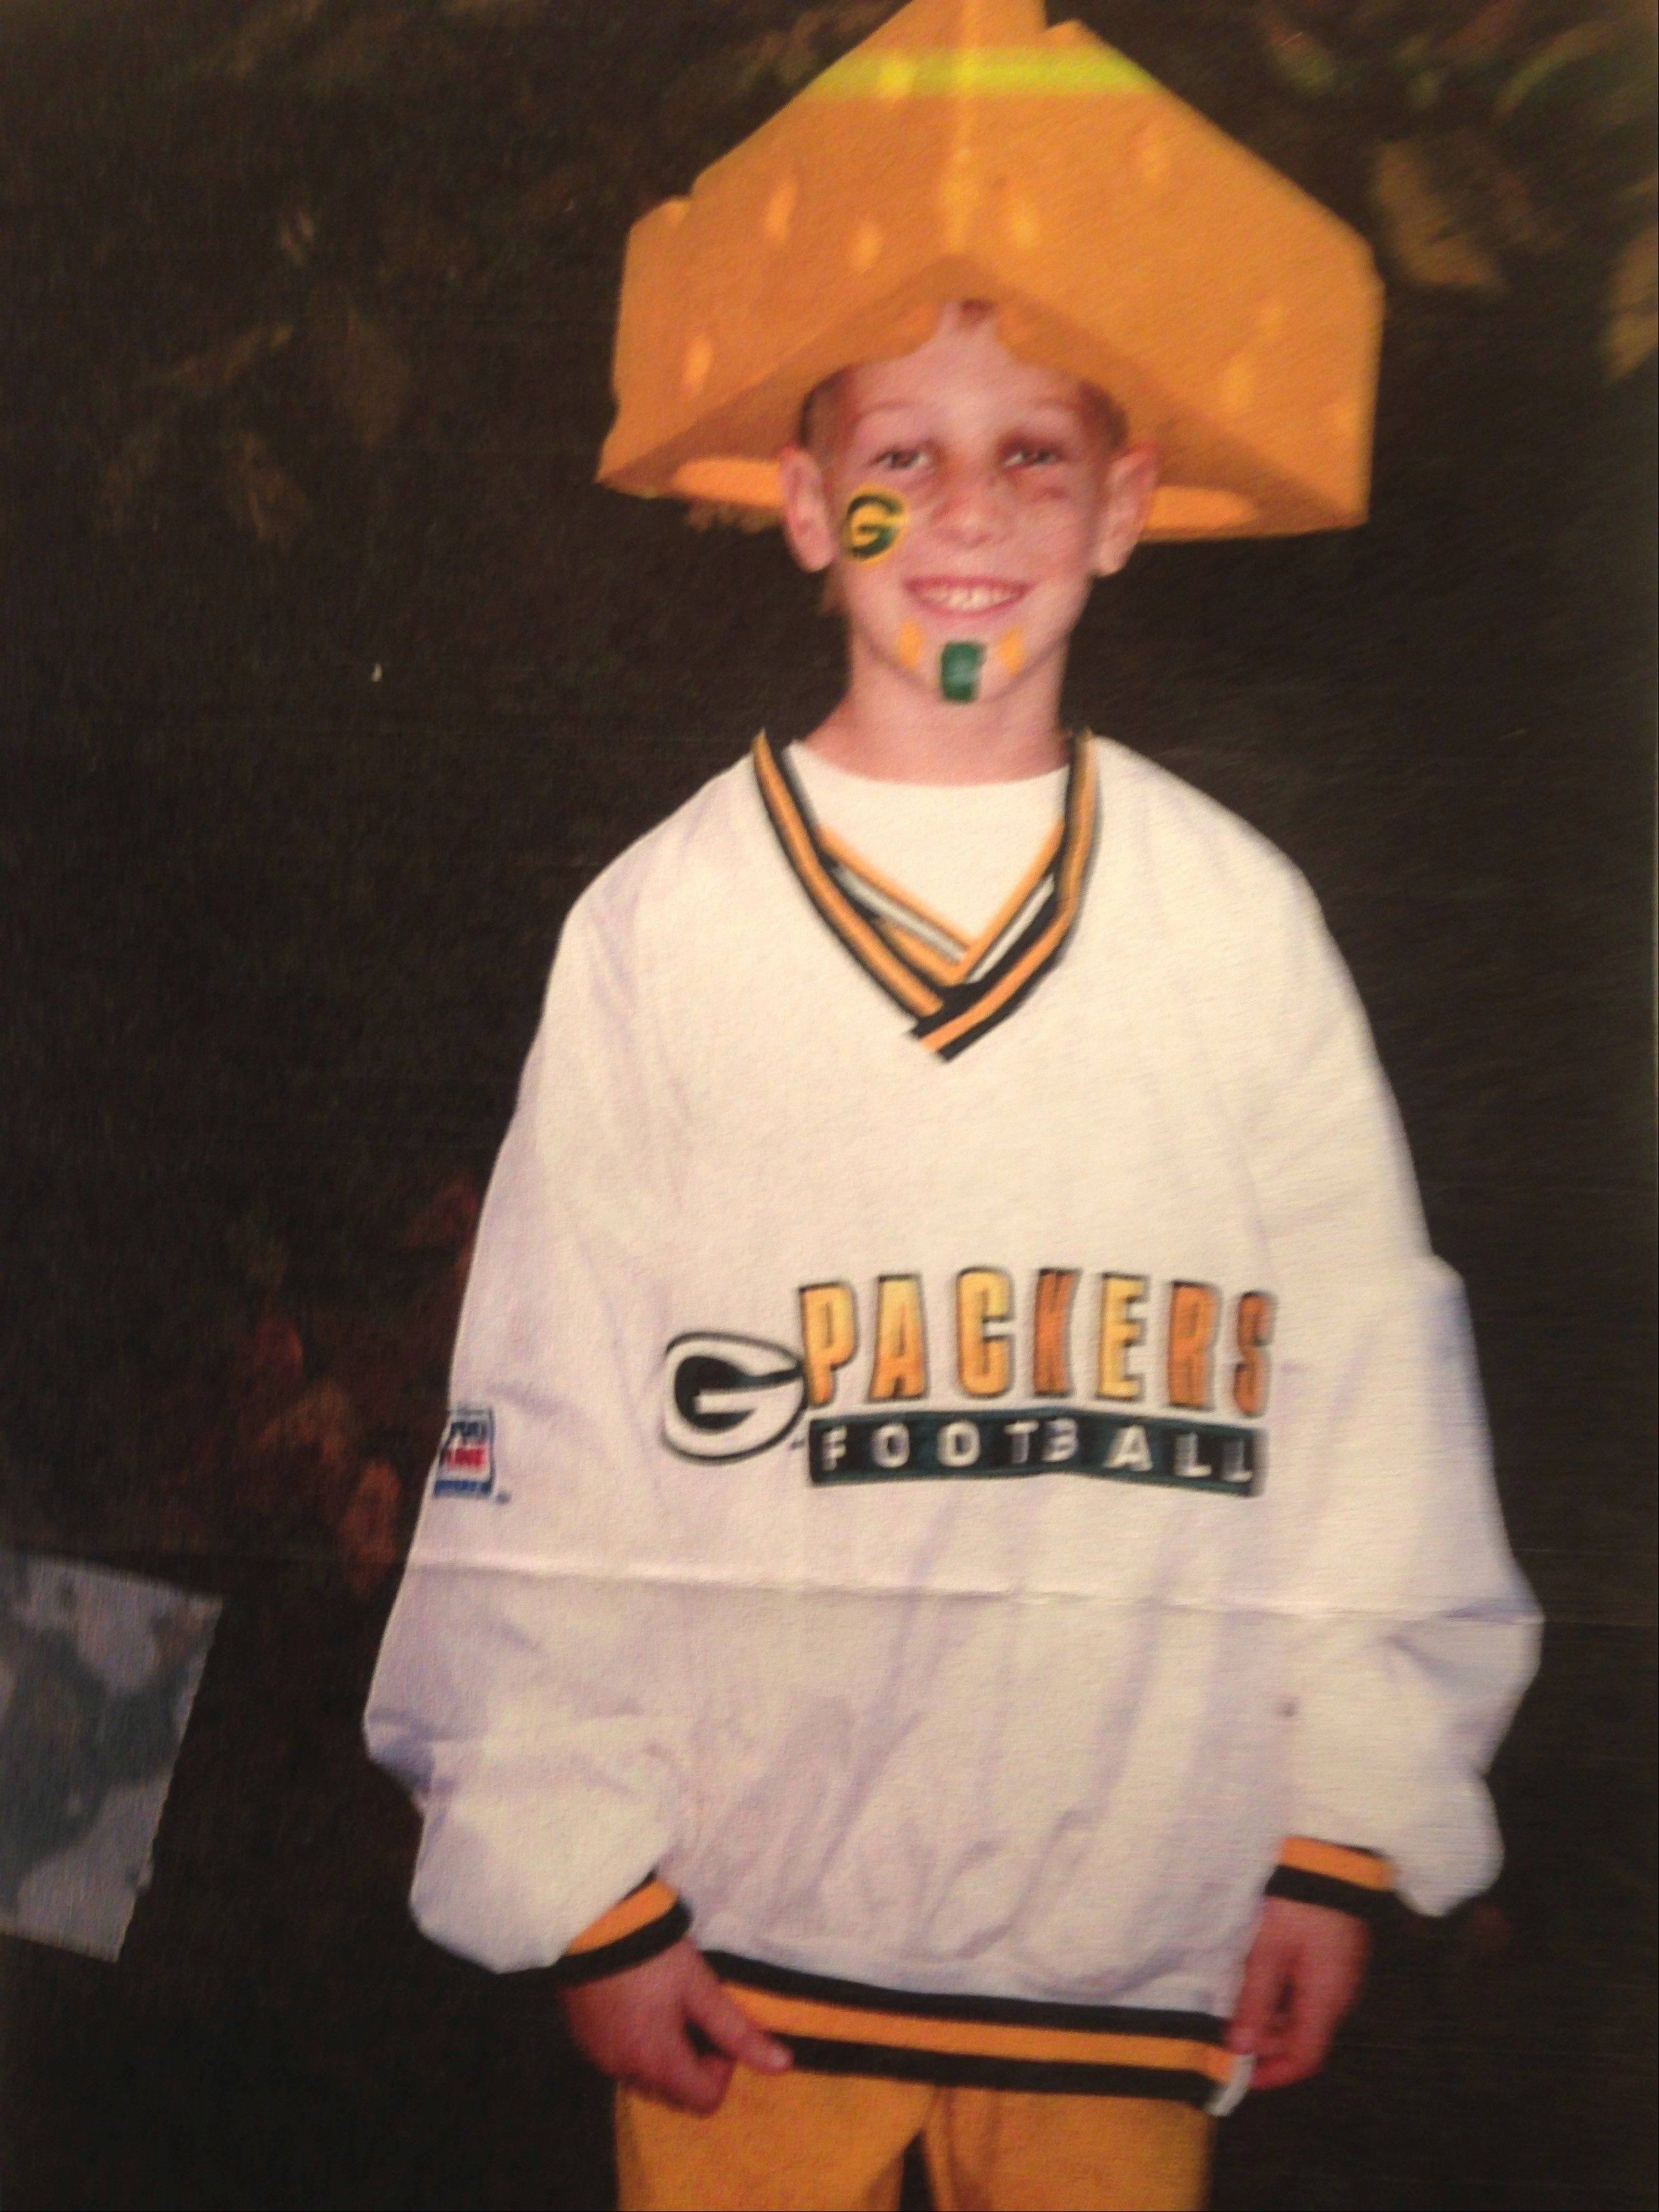 Photo courtesy of Scott TolzienAs a fifth-grade student, Scott Tolzien of Rolling Meadows spent one Halloween dressed as Packers fan. Now the former Fremd quarterback is on Green Bay's practice squad.